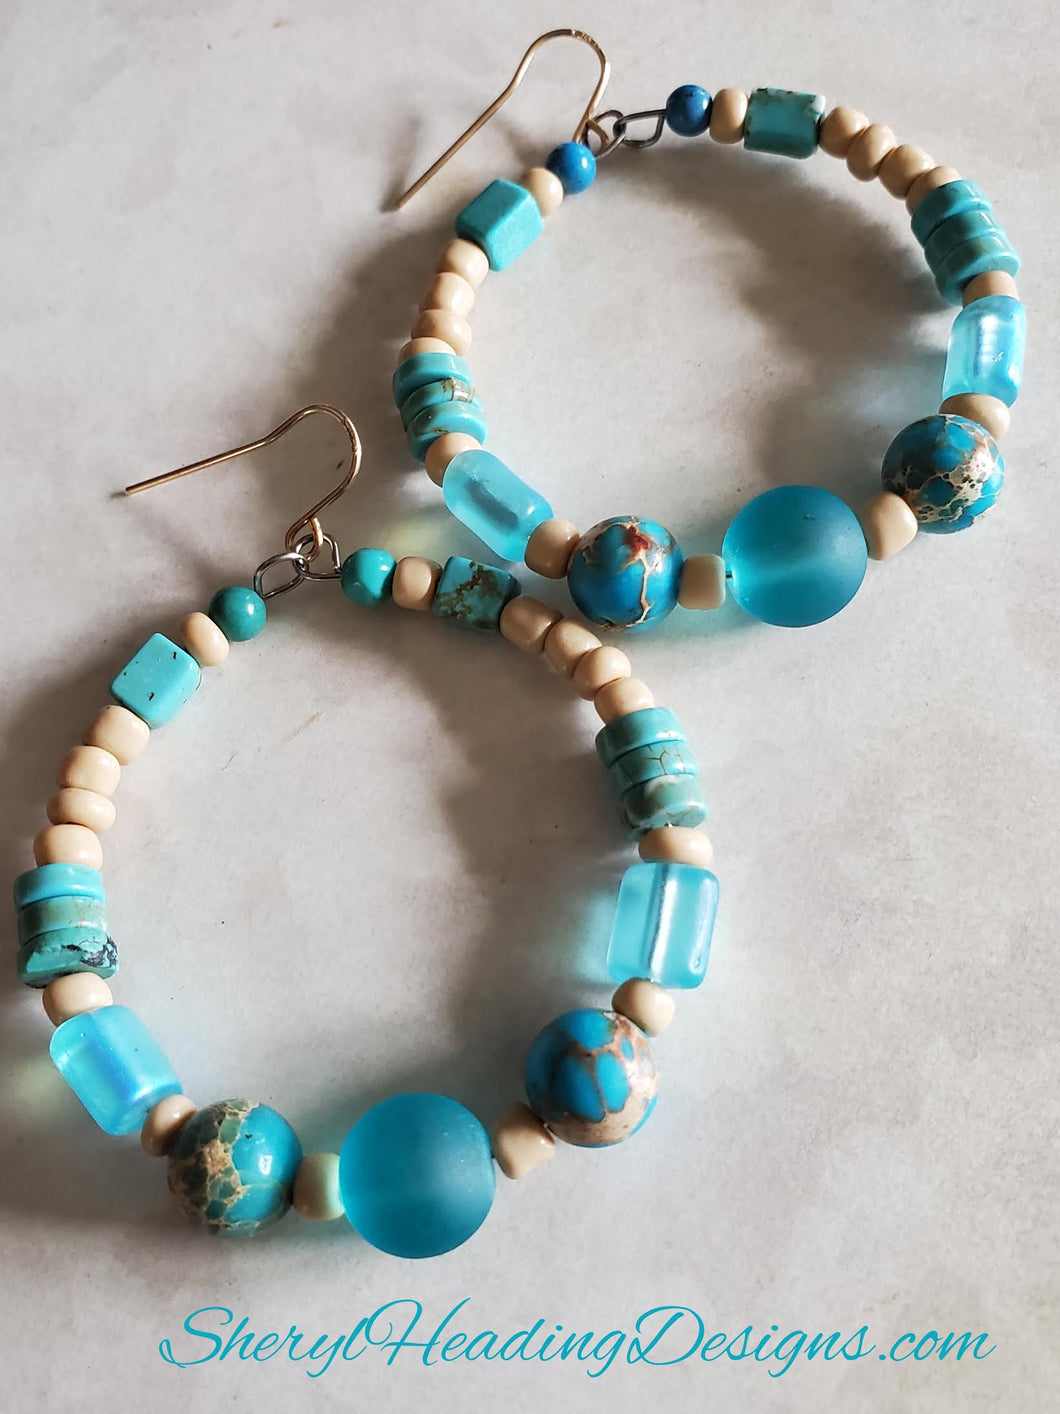 Turquoise Hoop Earrings are Calling Your Name